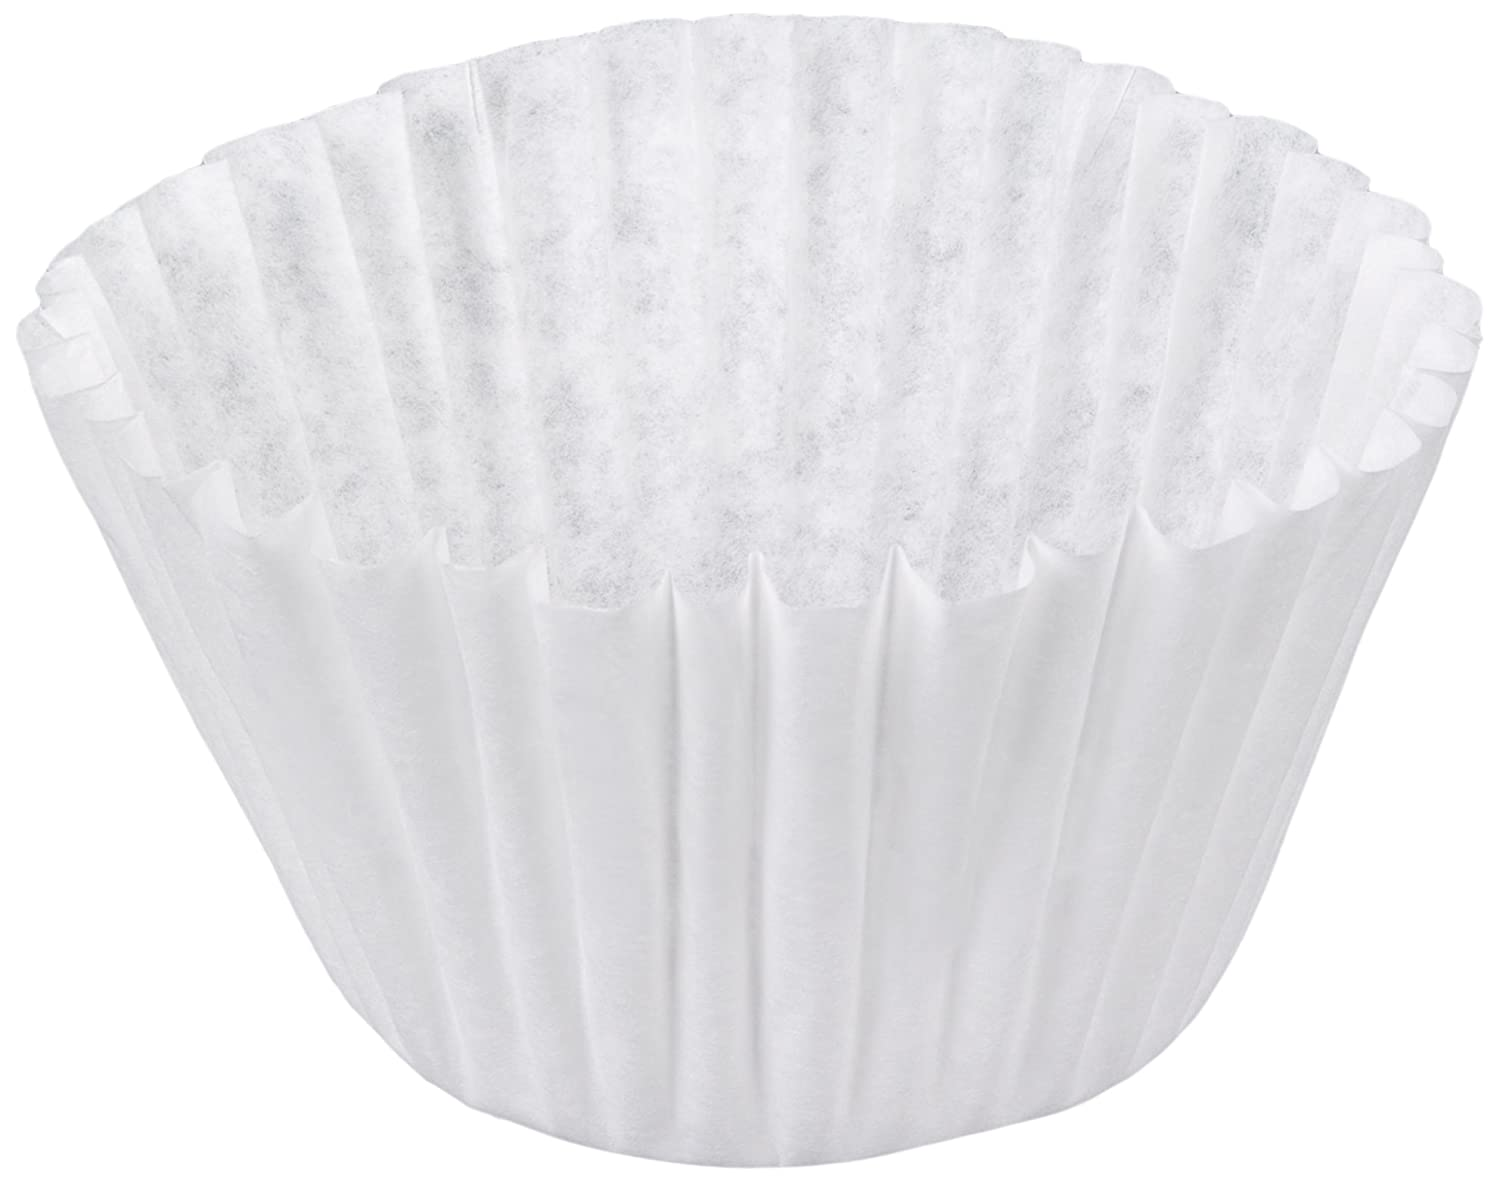 BUNN 20138.1000 Coffee Filters, White